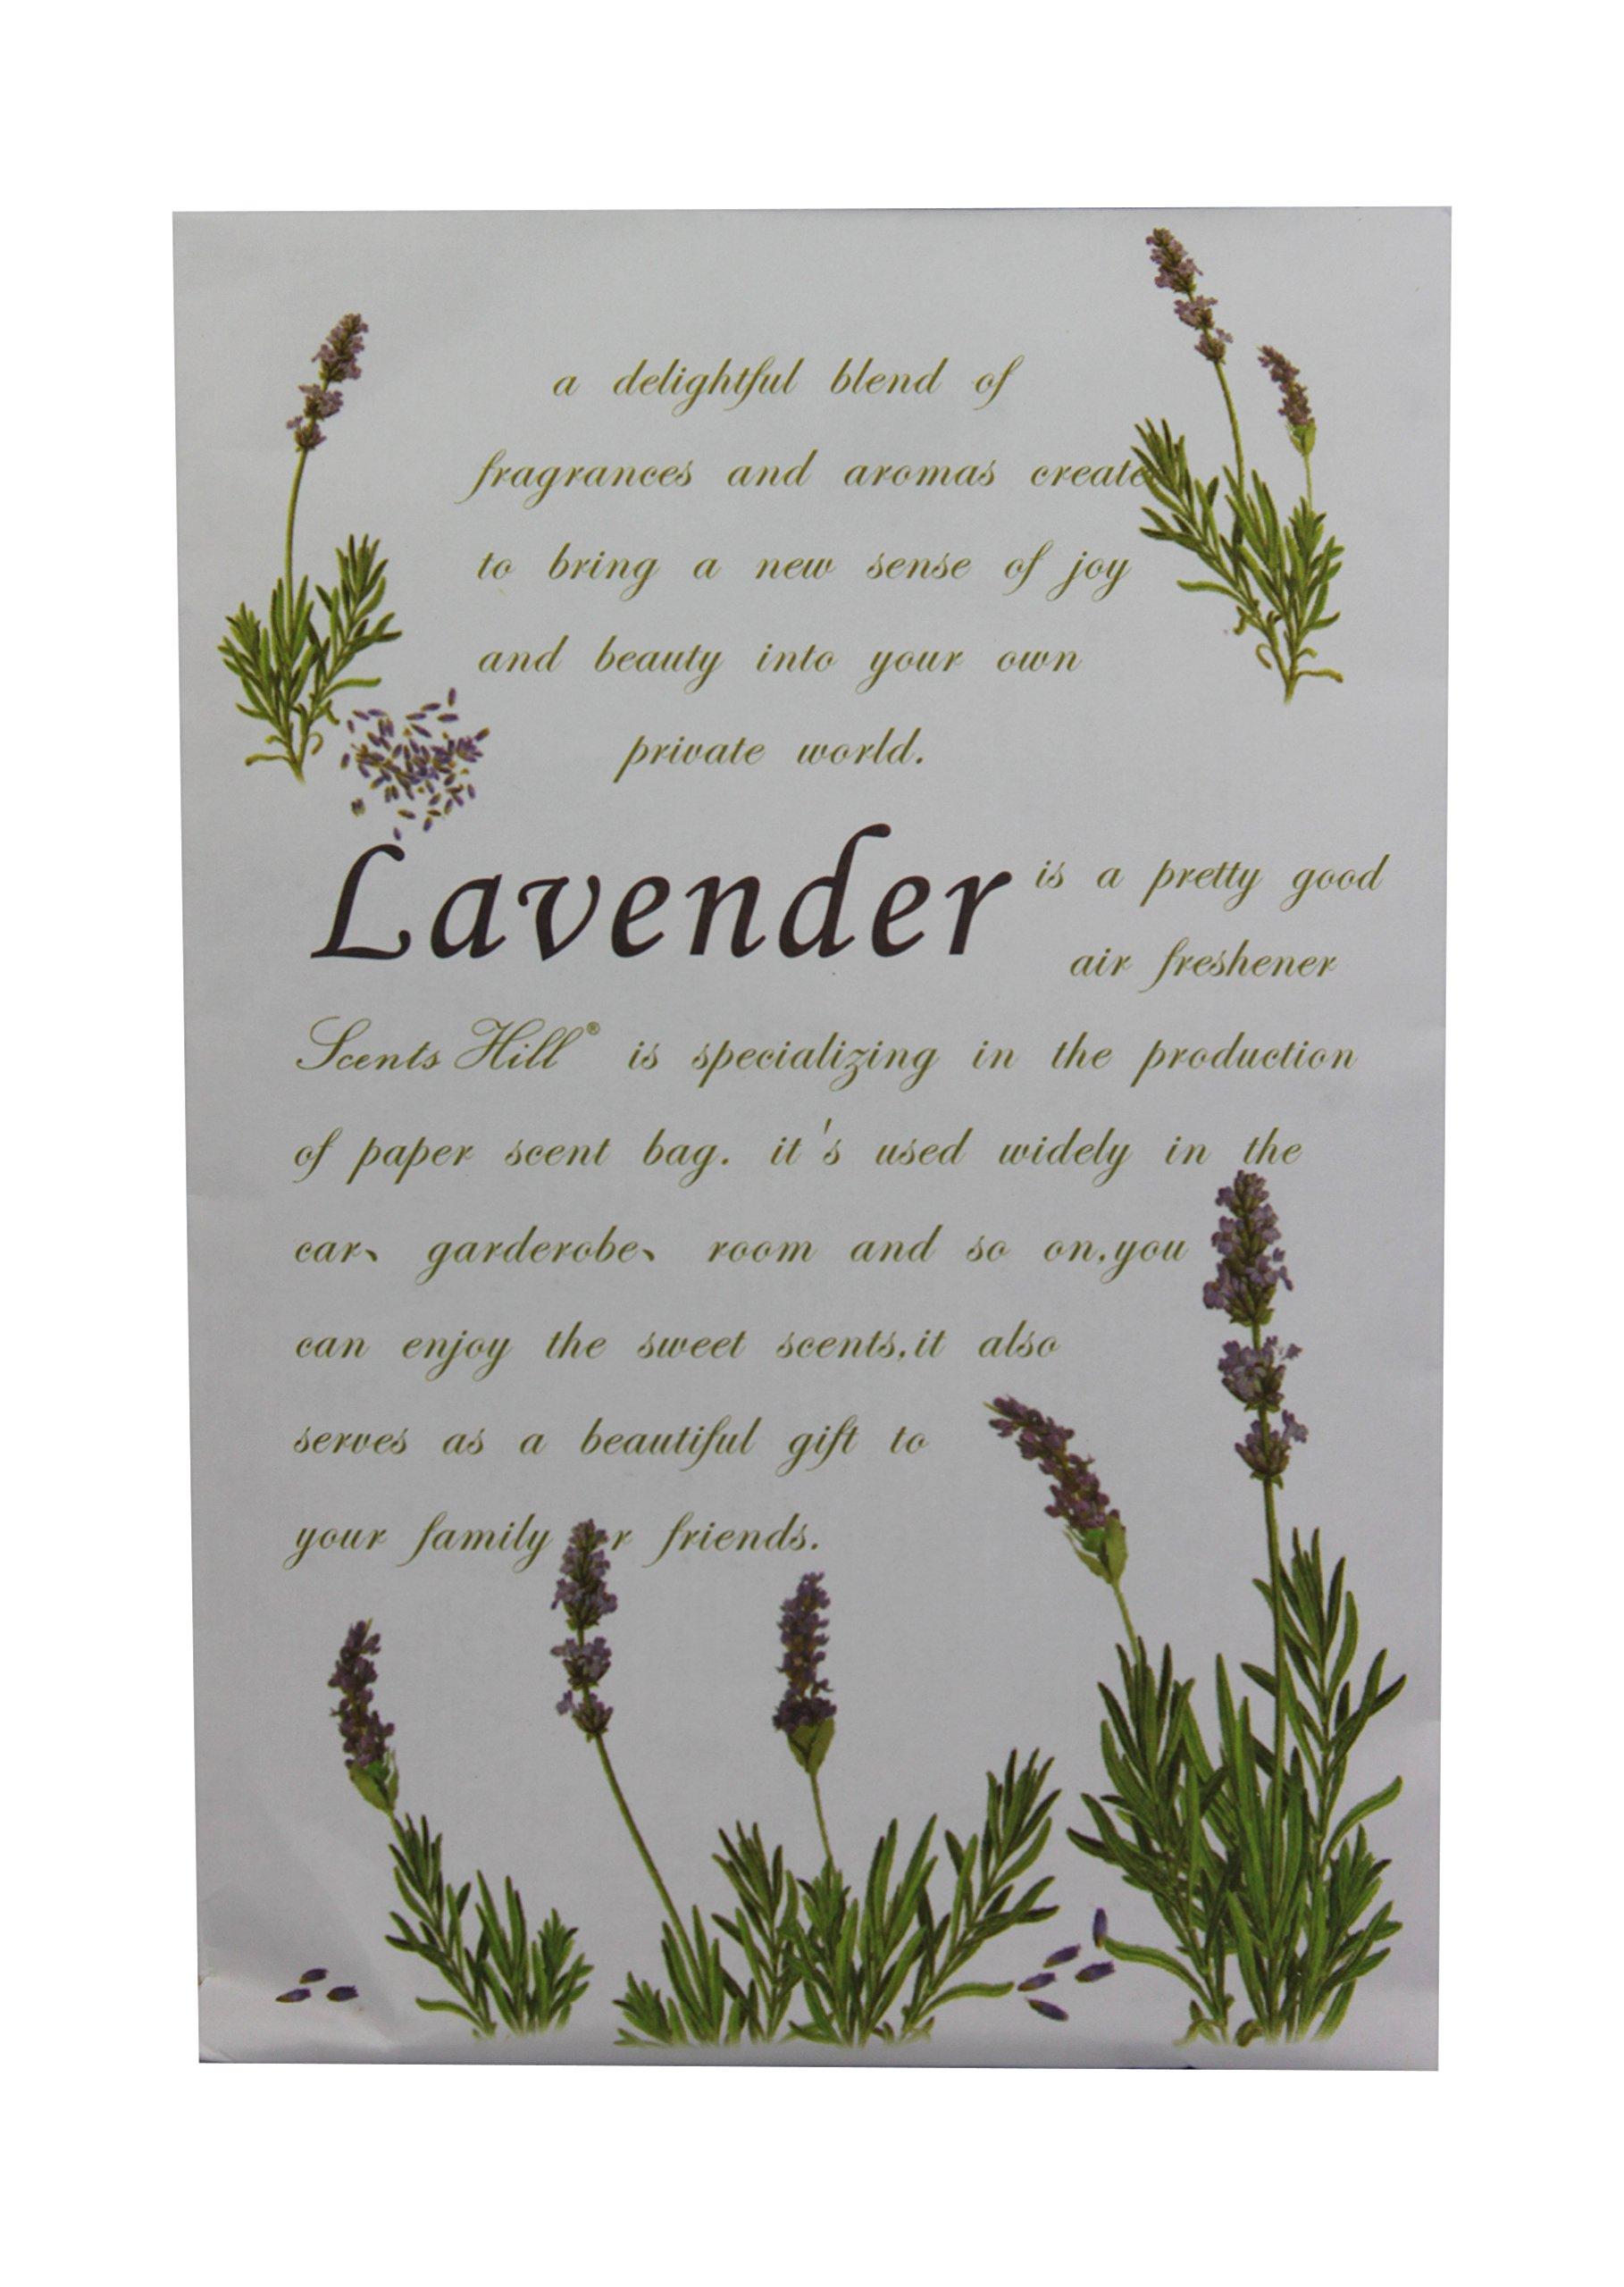 Feel Fragrance Scented Sachet for Closet,Lot of 8 (Lavender) by Scents Hill